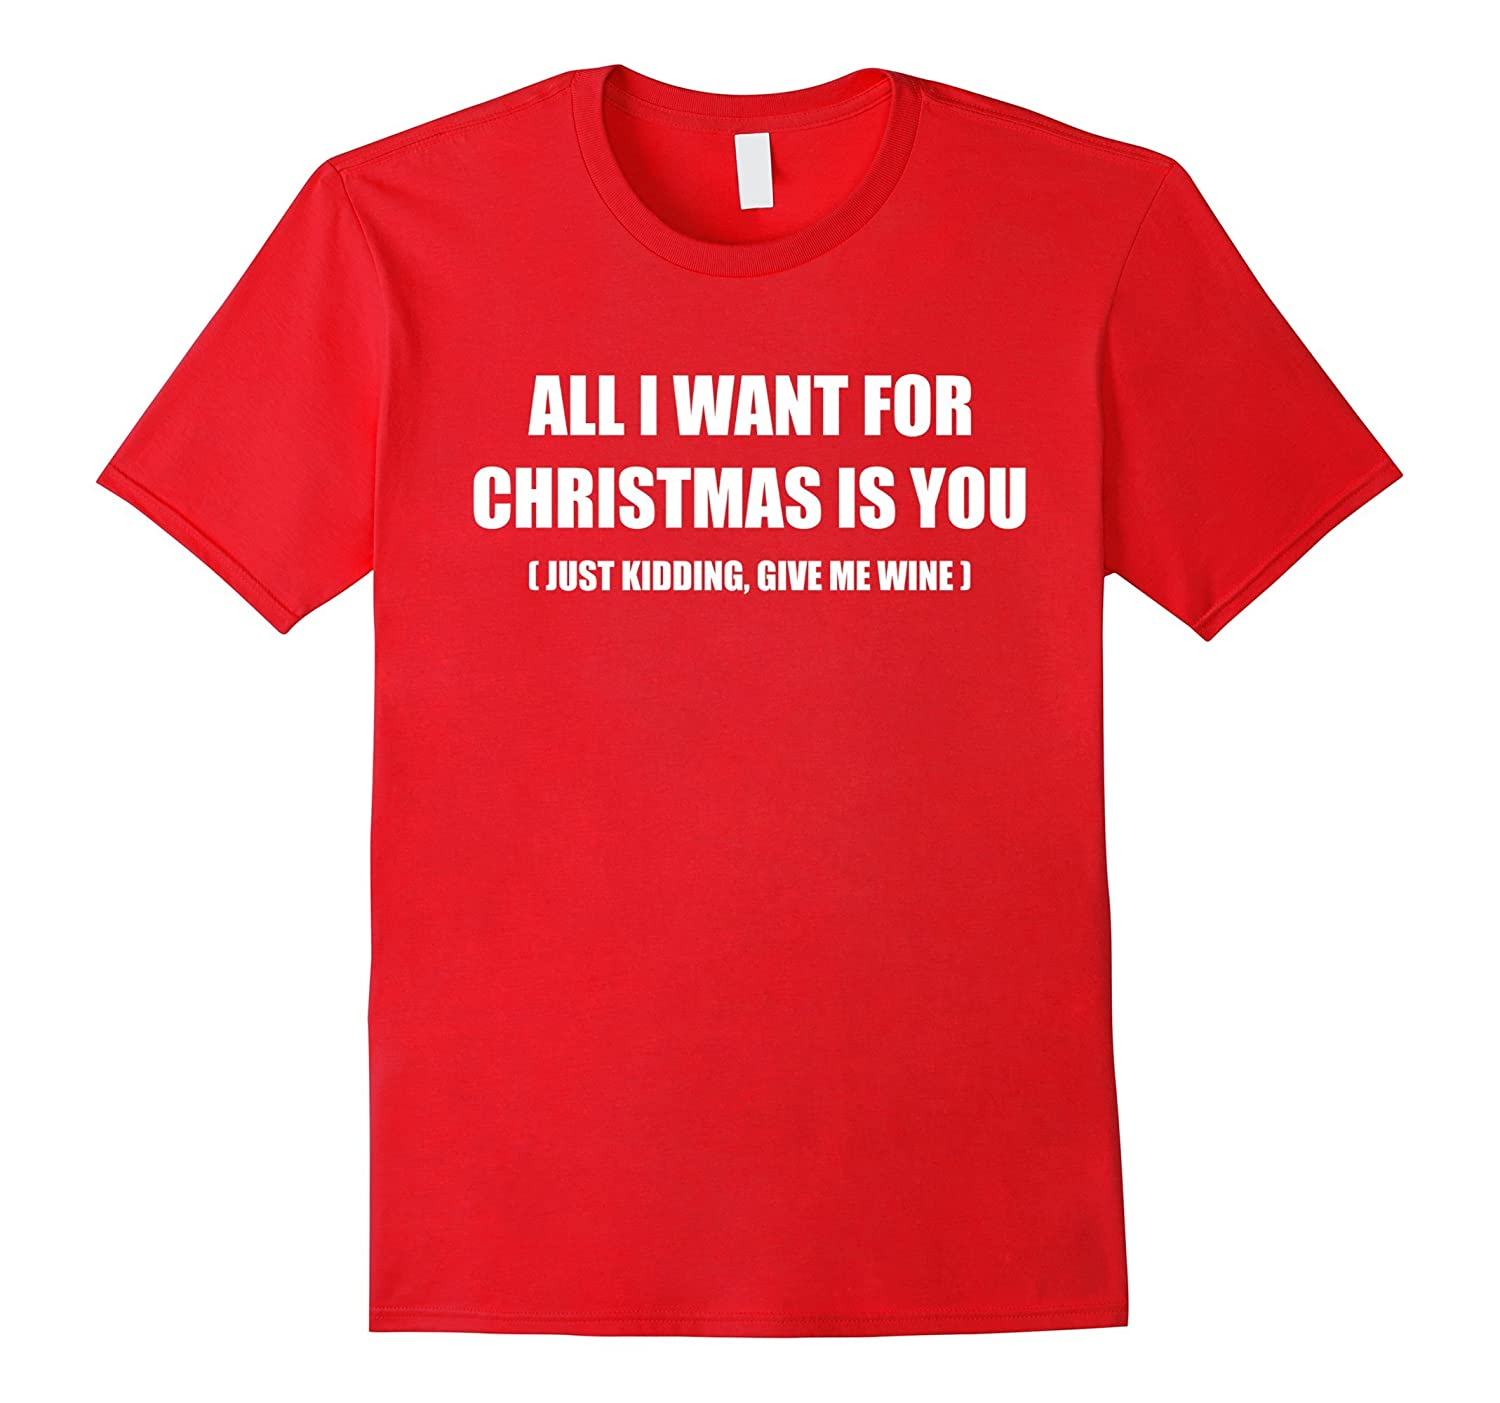 All I Want For Christmas Is You t shirt, Just Kidding I Want-azvn